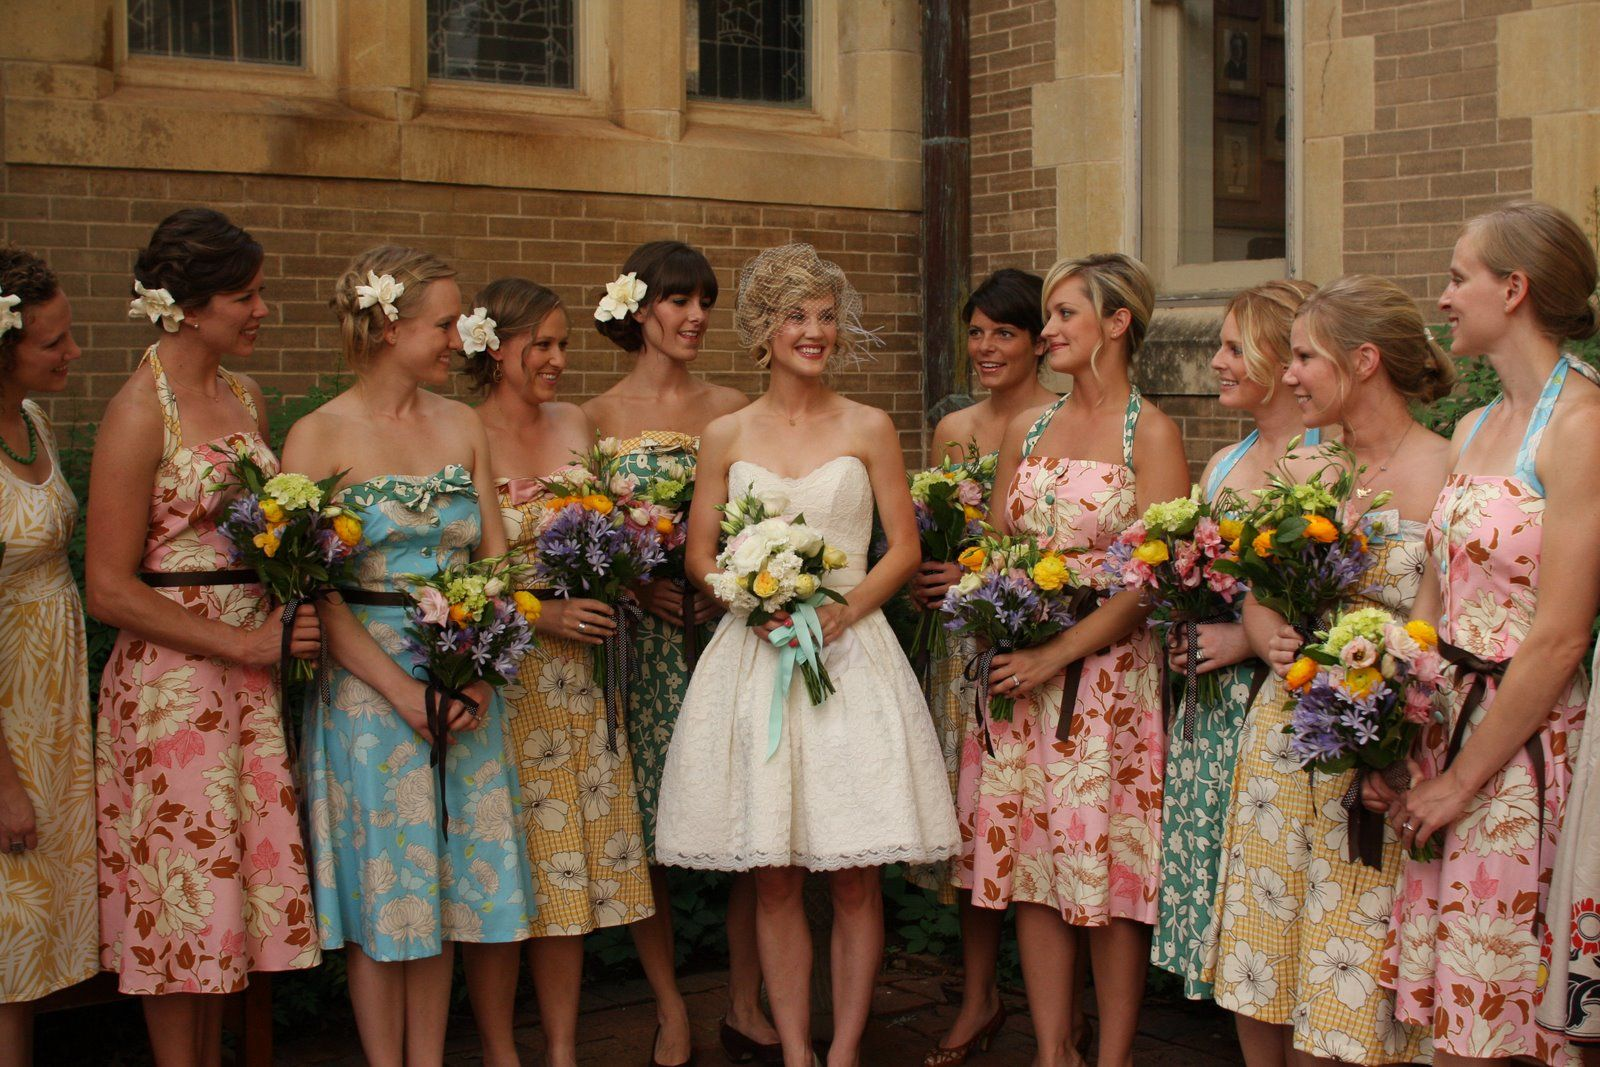 Floral bridesmaids dresses floral bridesmaid dresses weddings floral bridesmaids dresses ombrellifo Gallery